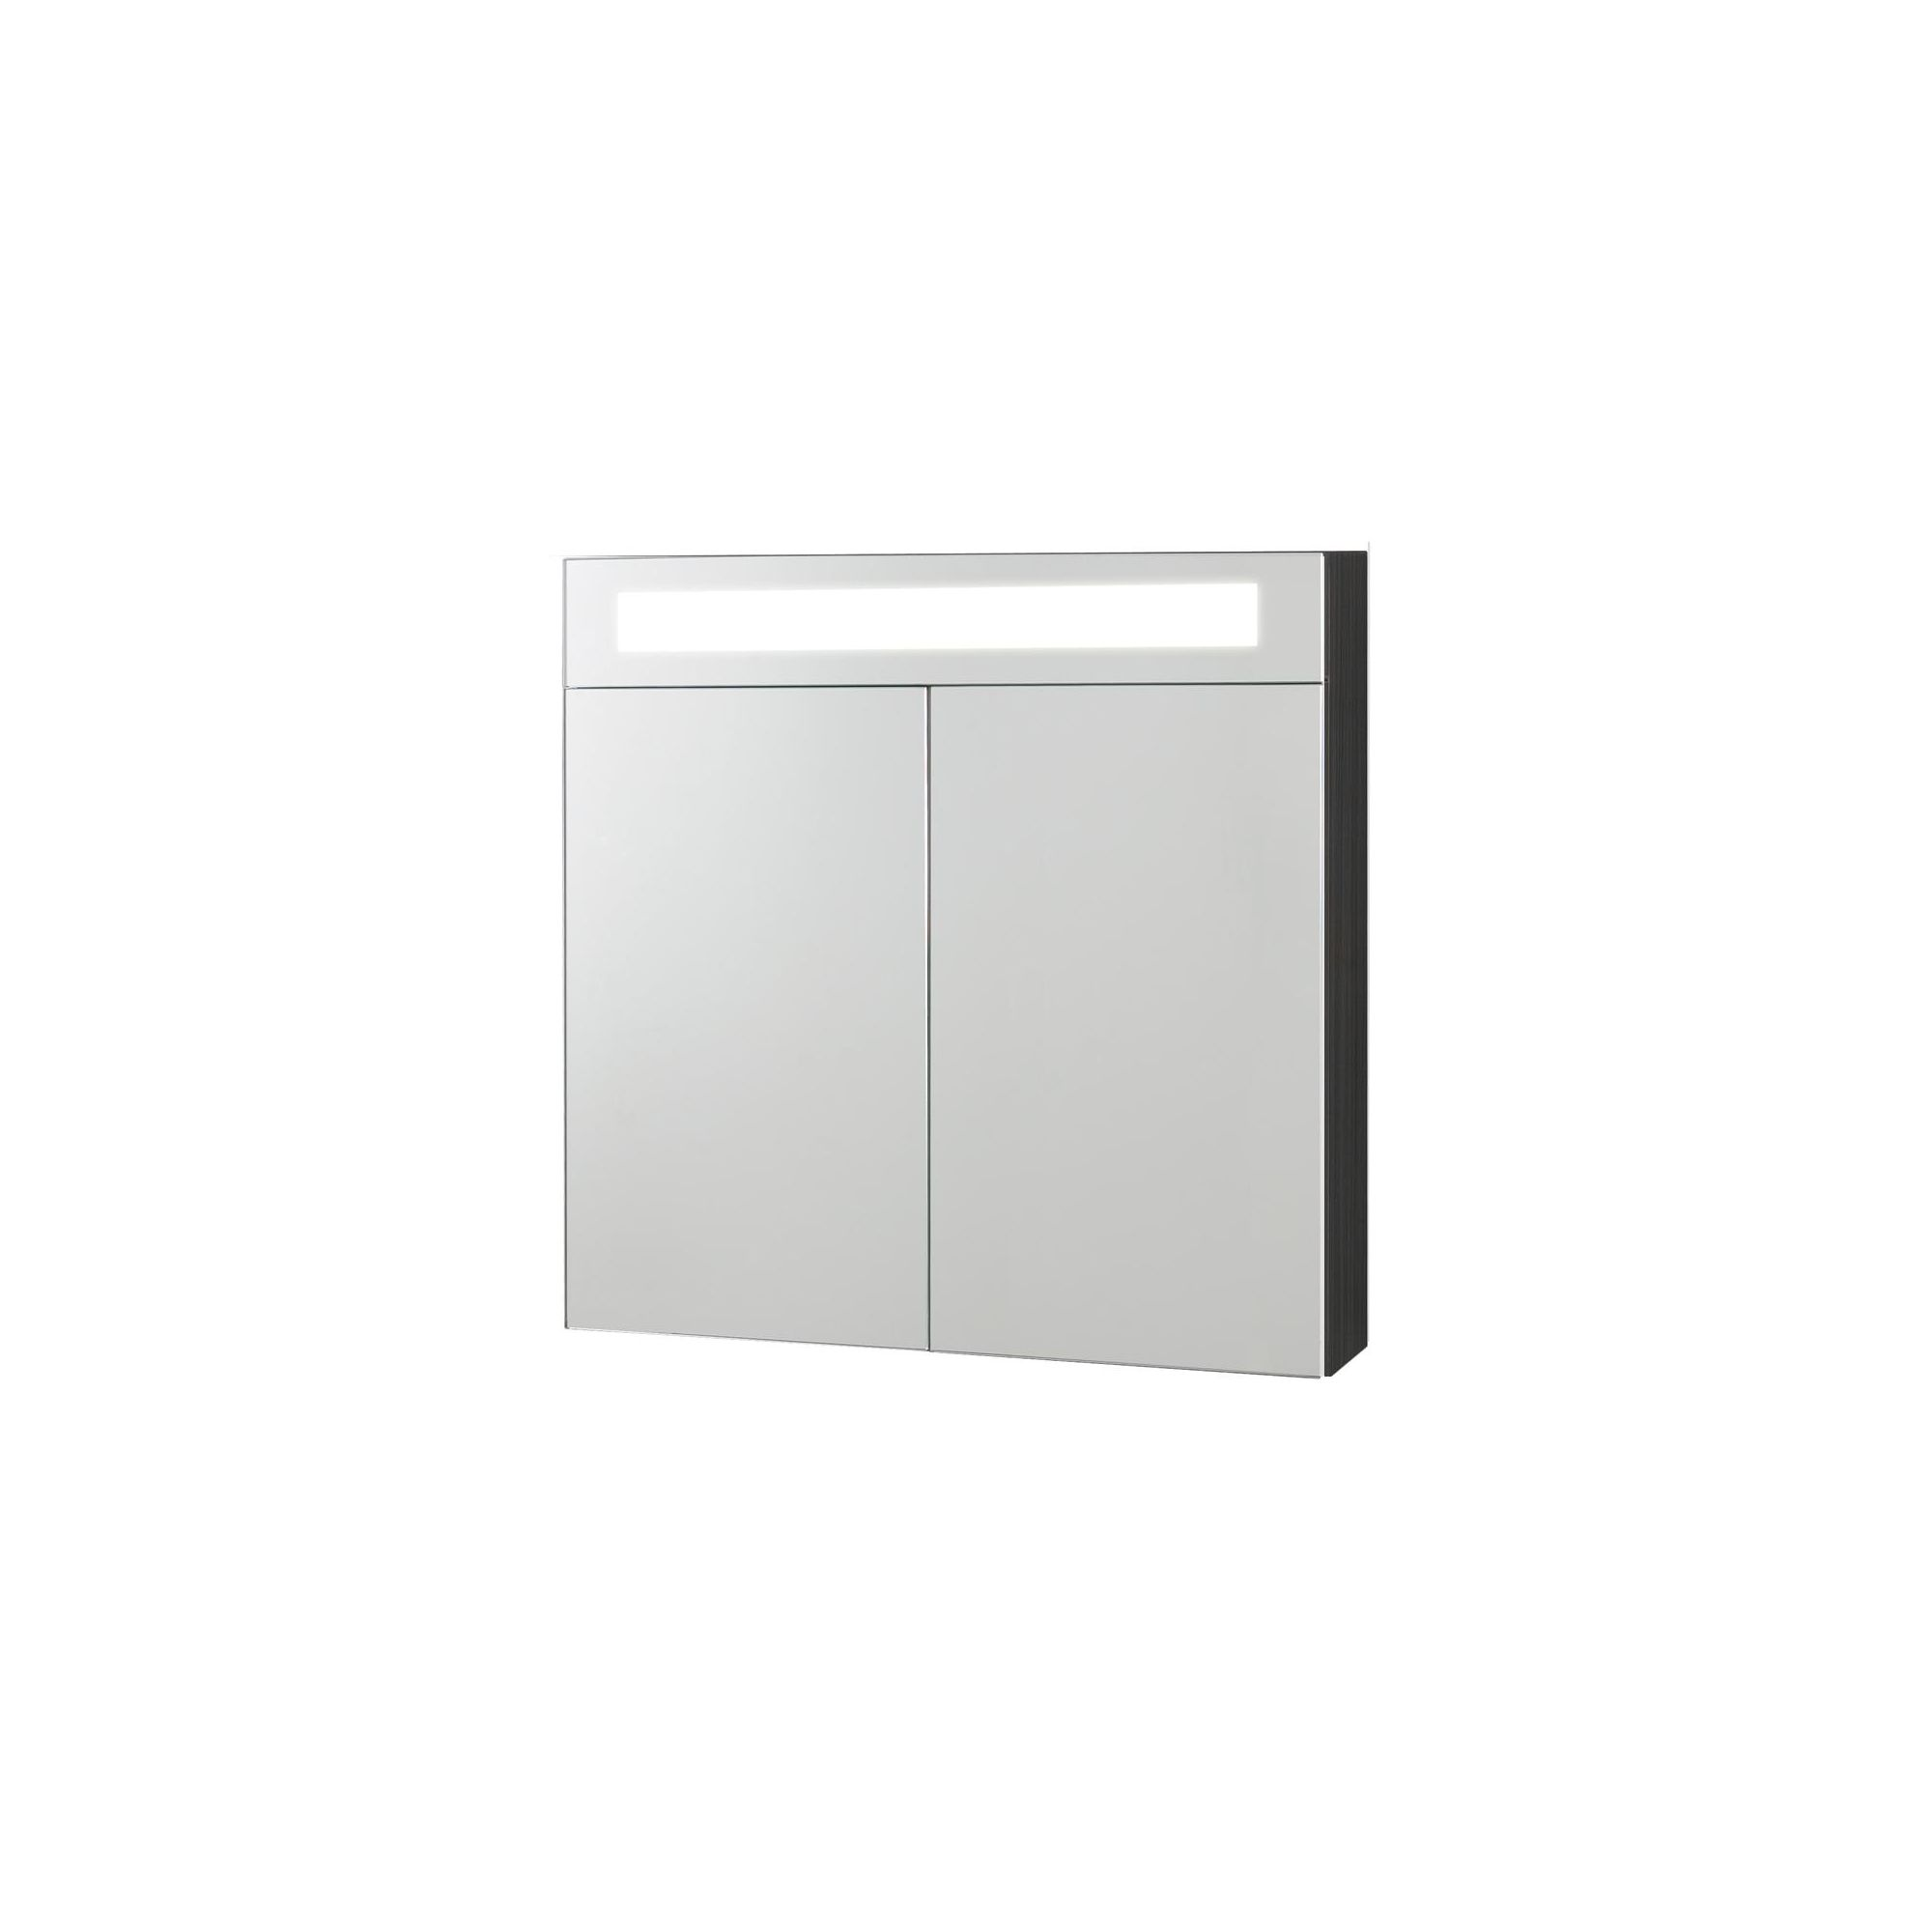 Home and garden bathroom desire modena mirrored for Bathroom cabinets 600mm